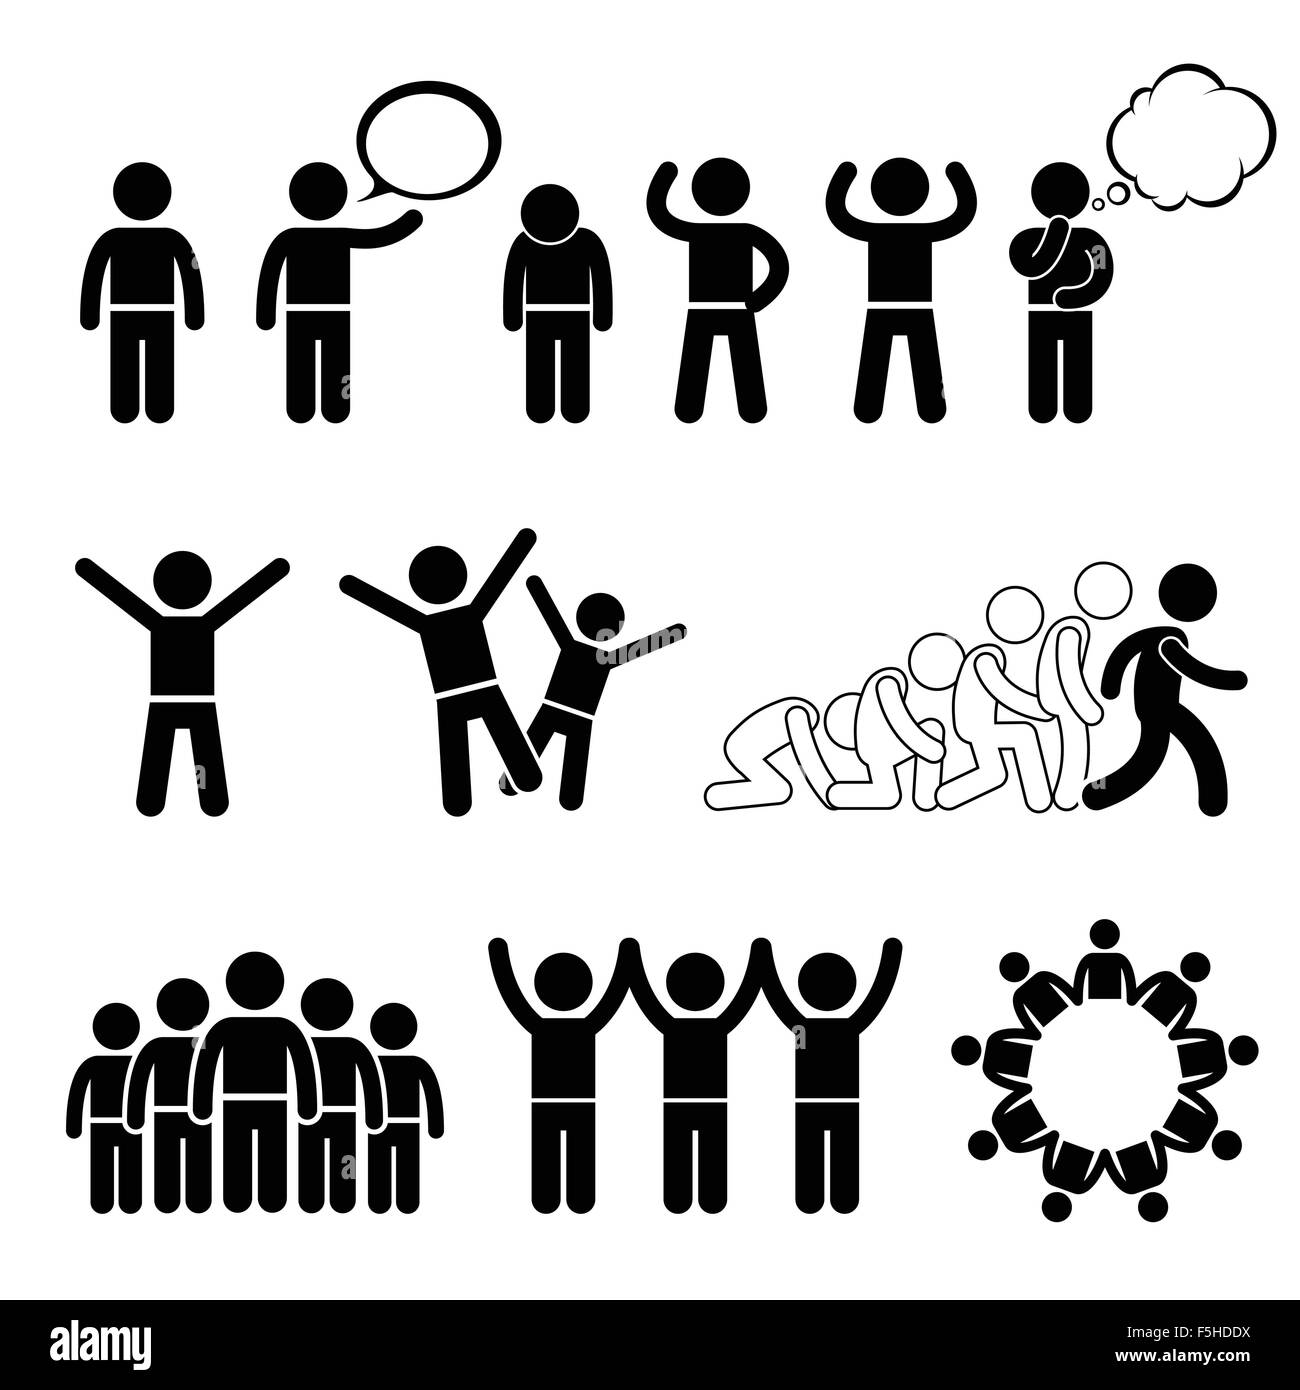 Children Action Pose Welfare Rights Stick Figure Pictogram Icon Cliparts - Stock Image